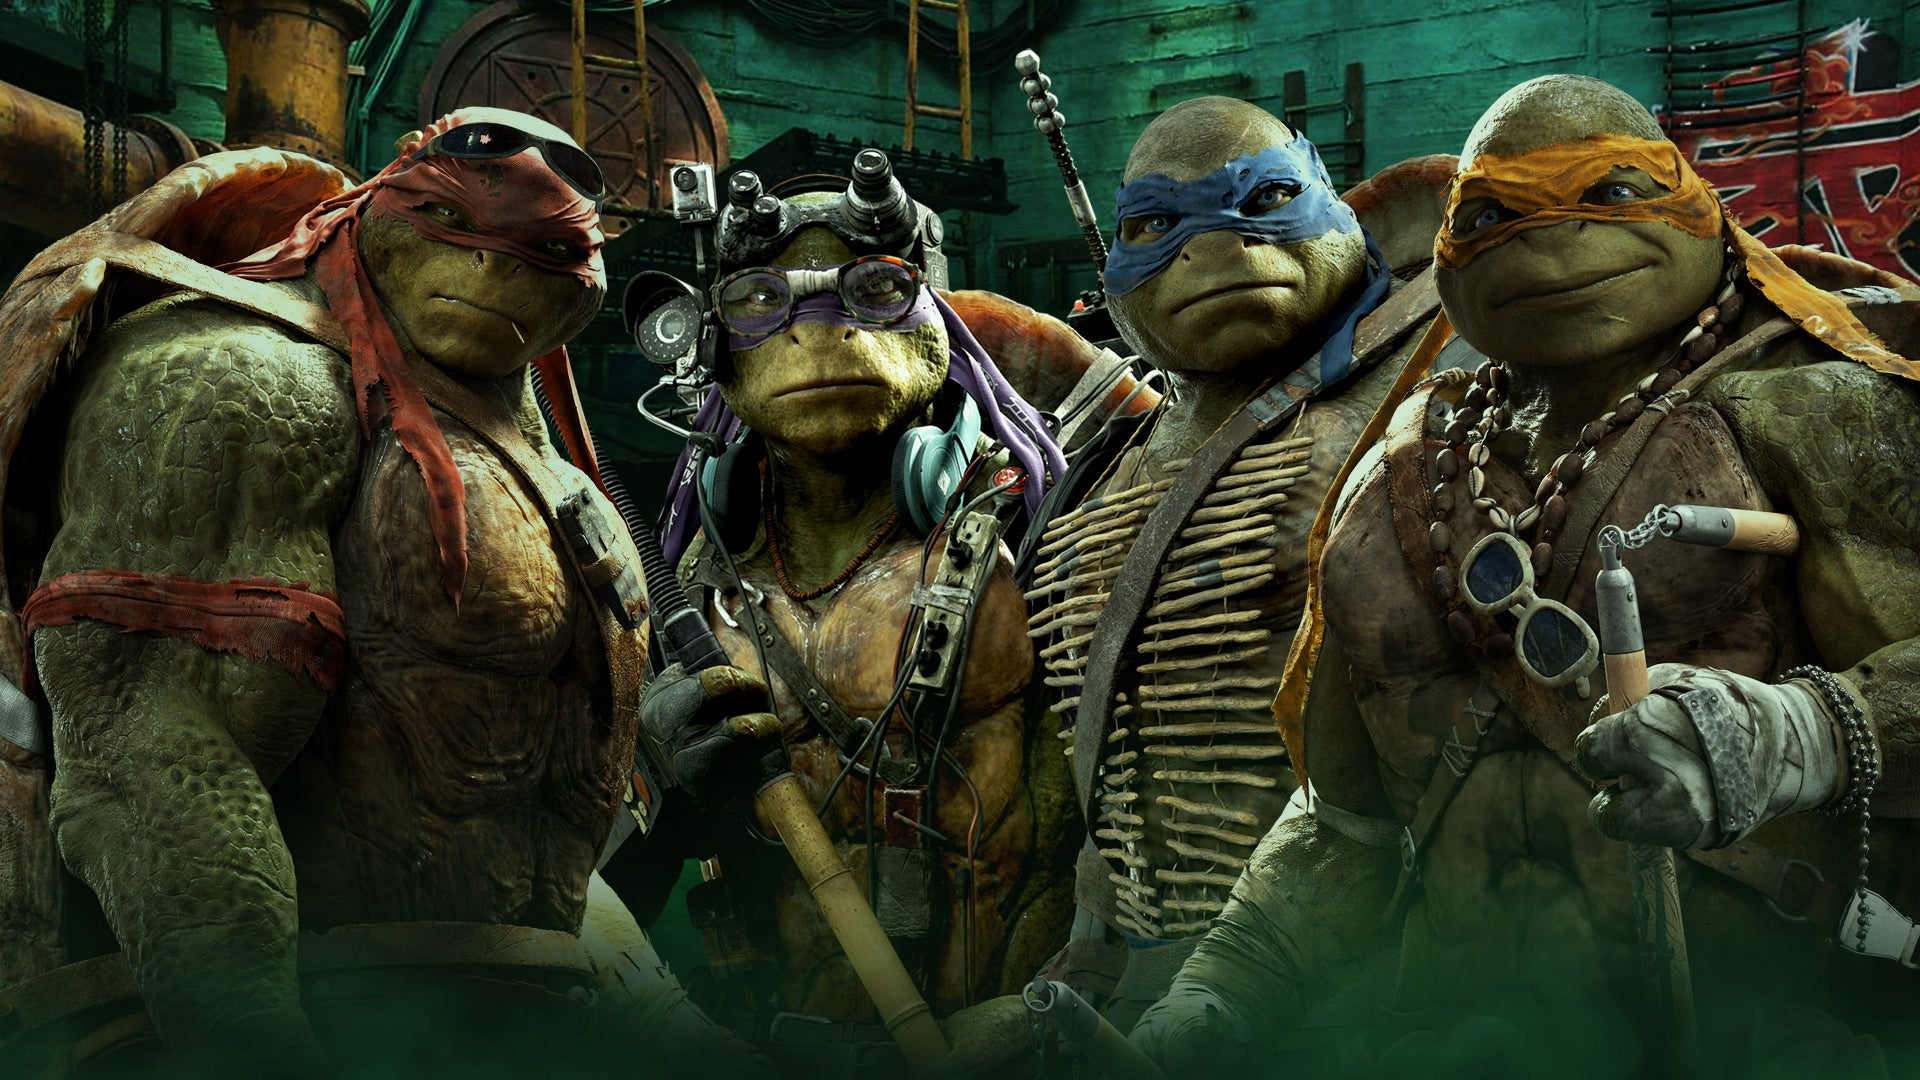 Three New Teenage Mutant Ninja Turtles TV Spots Released